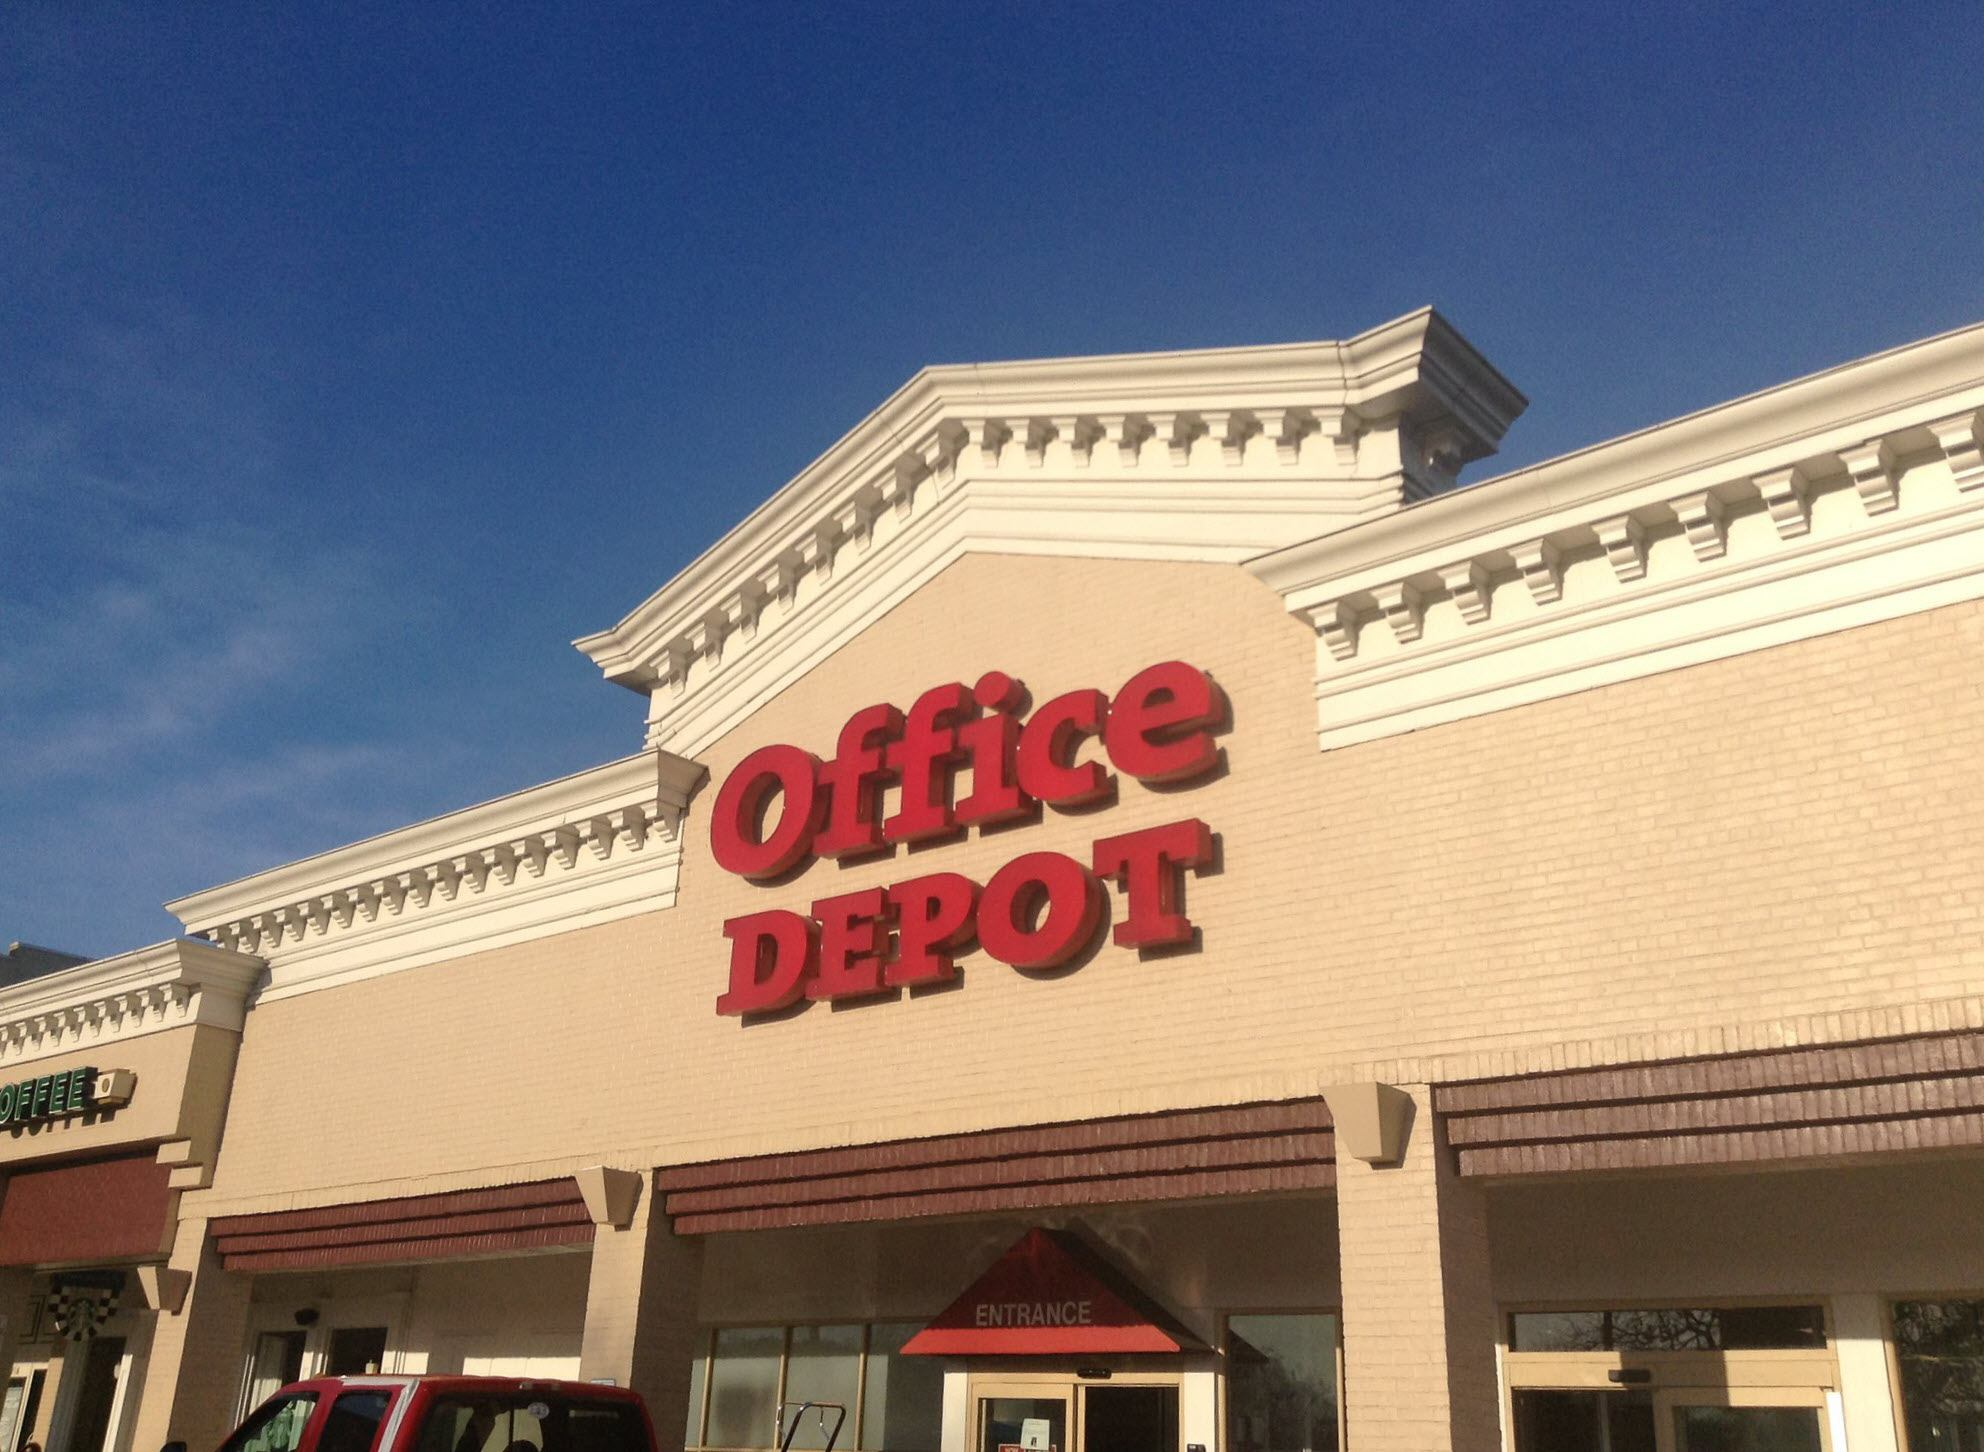 """""""Office Depot"""", by Mike Mozart, is licensed under CC BY-SA 2.0."""